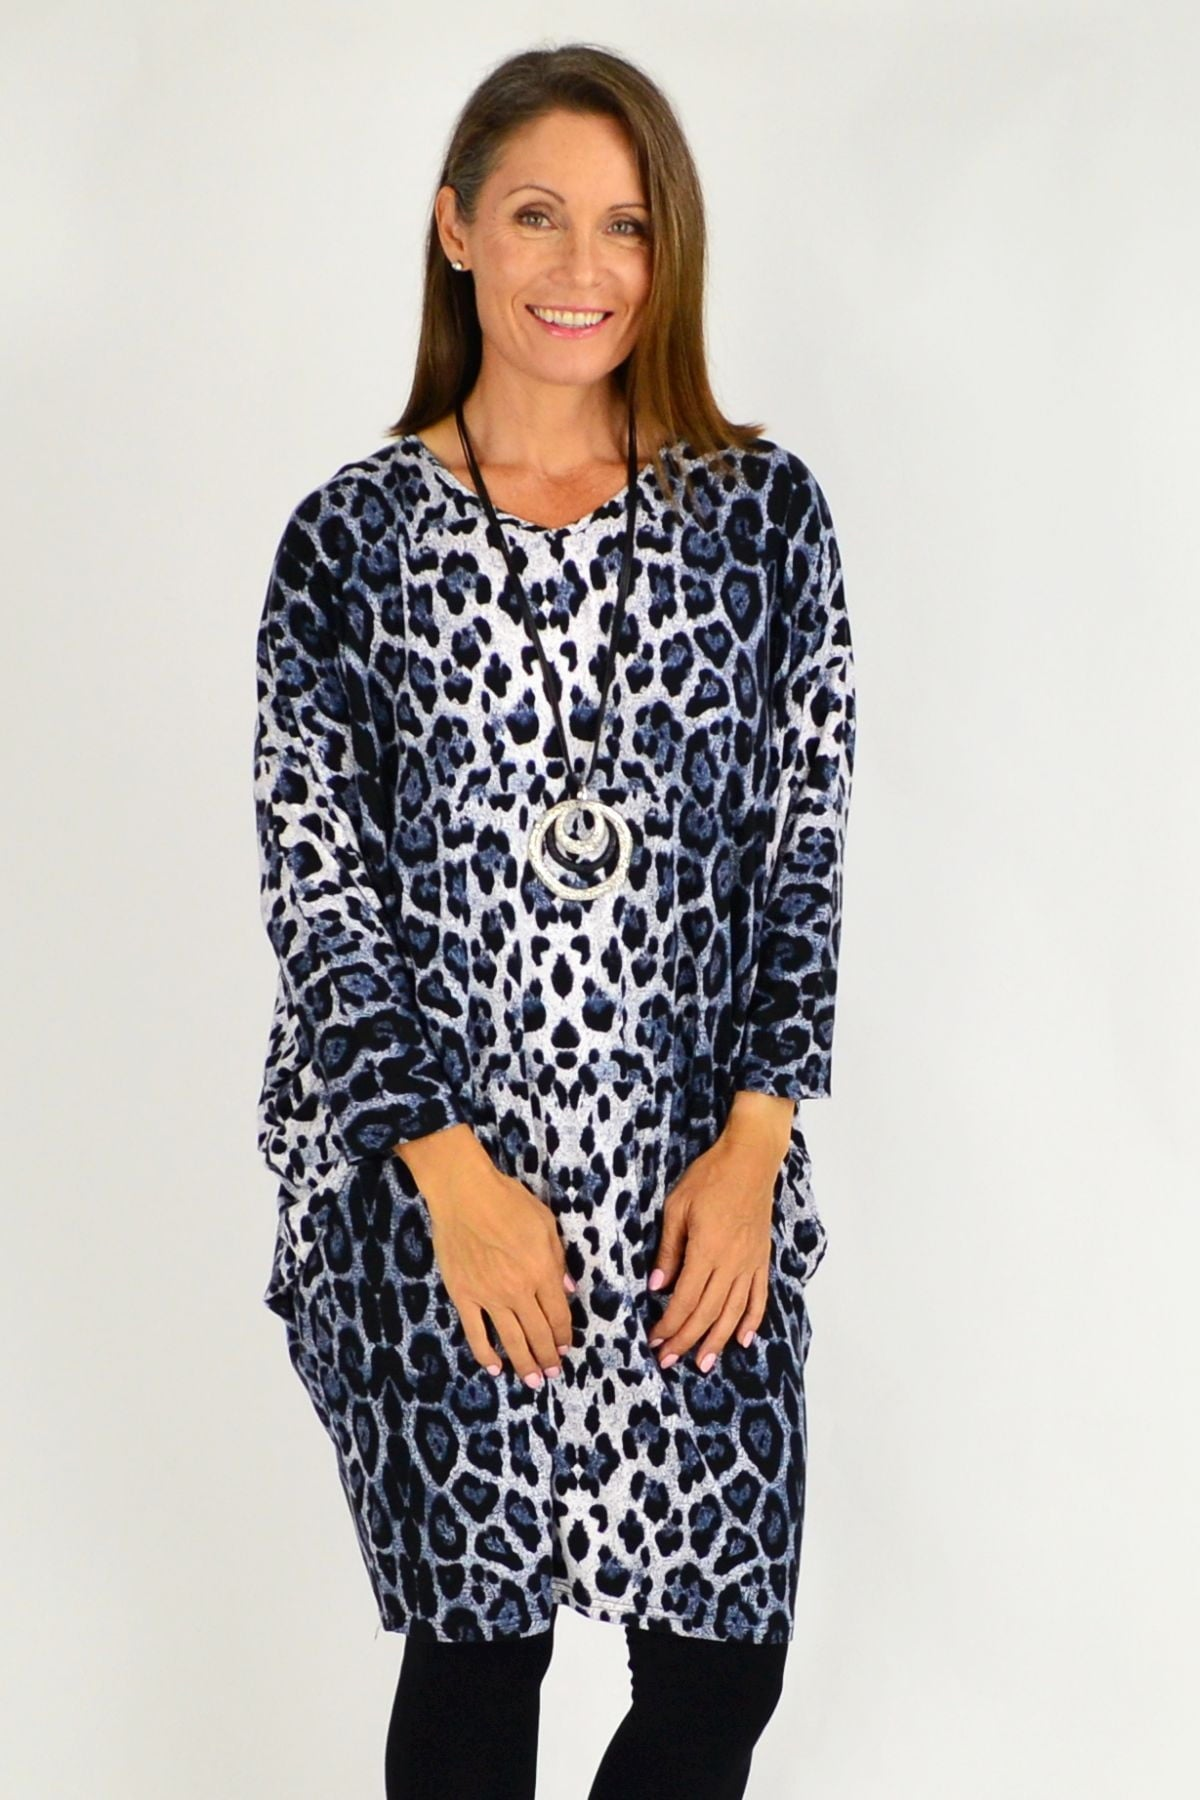 Blue Leopard Print Relaxed Long Tunic | I Love Tunics | Tunic Tops | Tunic | Tunic Dresses  | womens clothing online